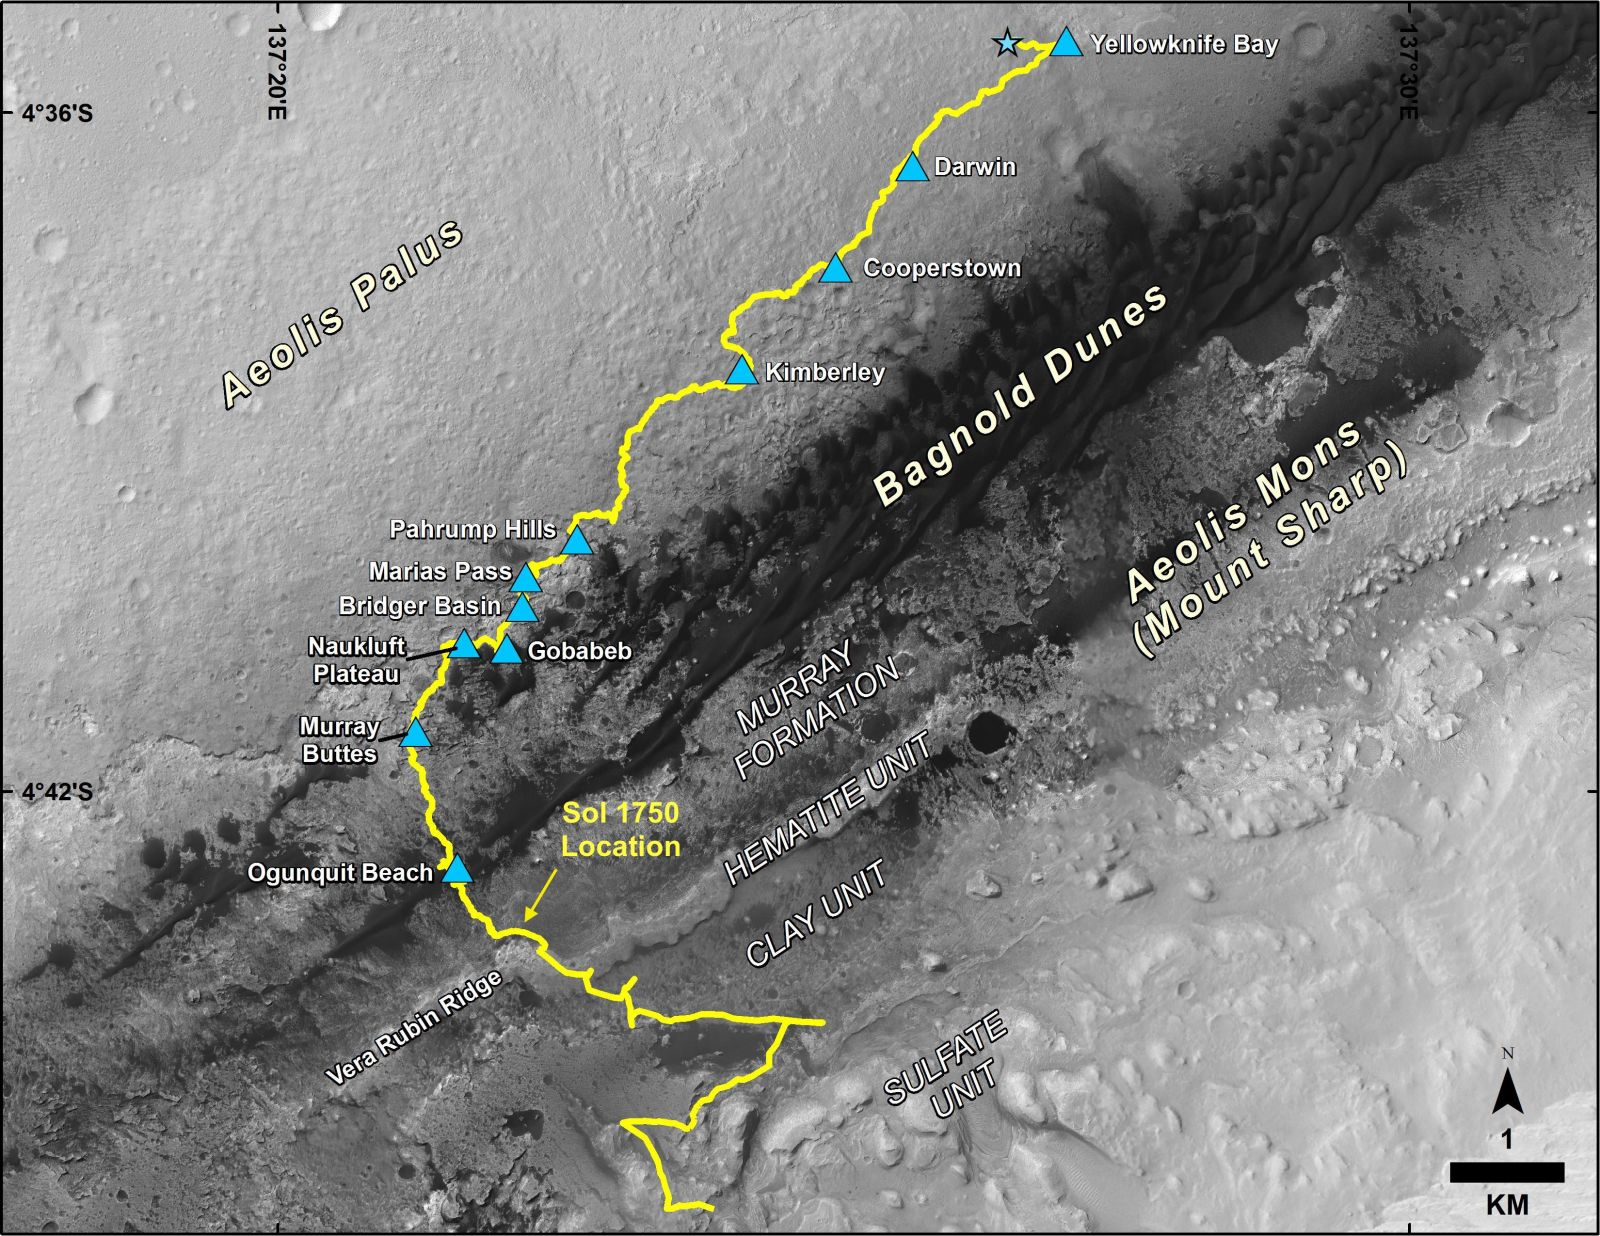 Curiosity's path on Mars